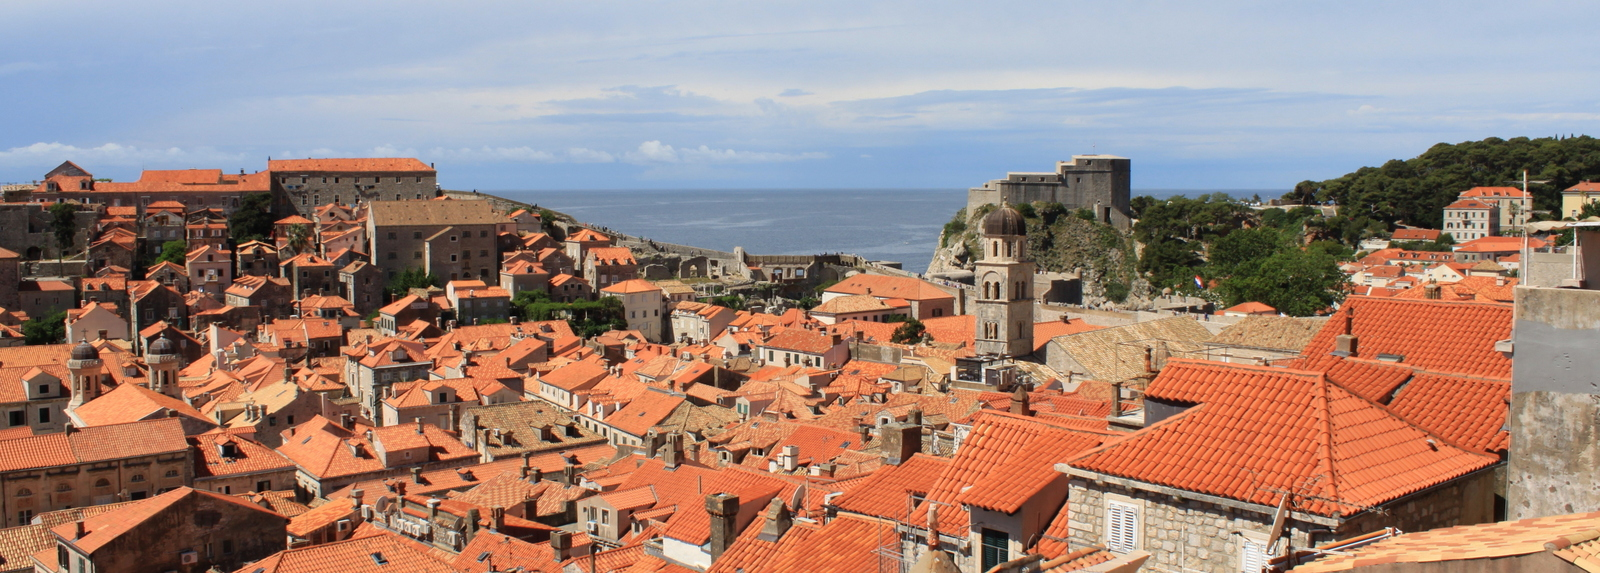 View from City Walls, Dubrovnik